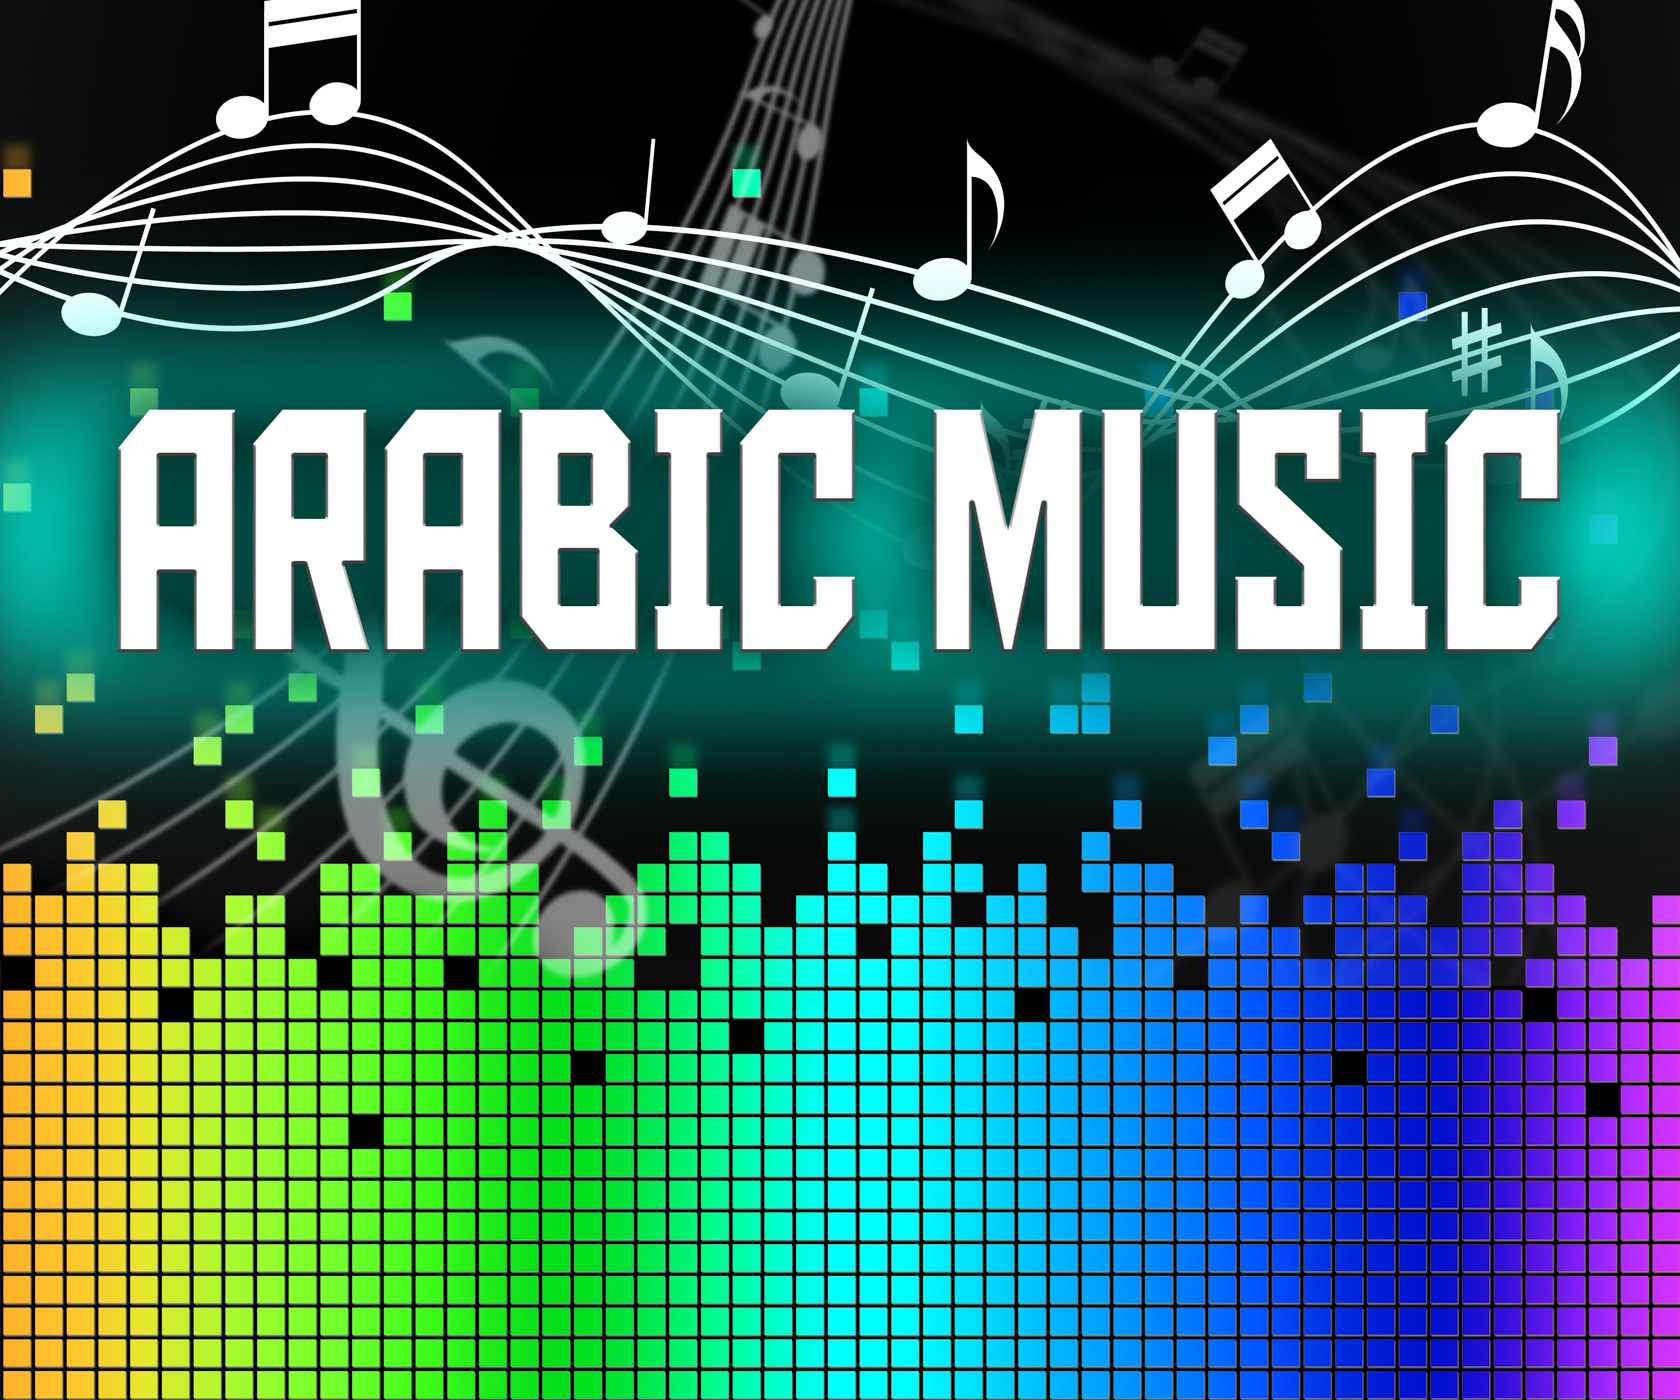 Arabic music shows middle east and arabia photo